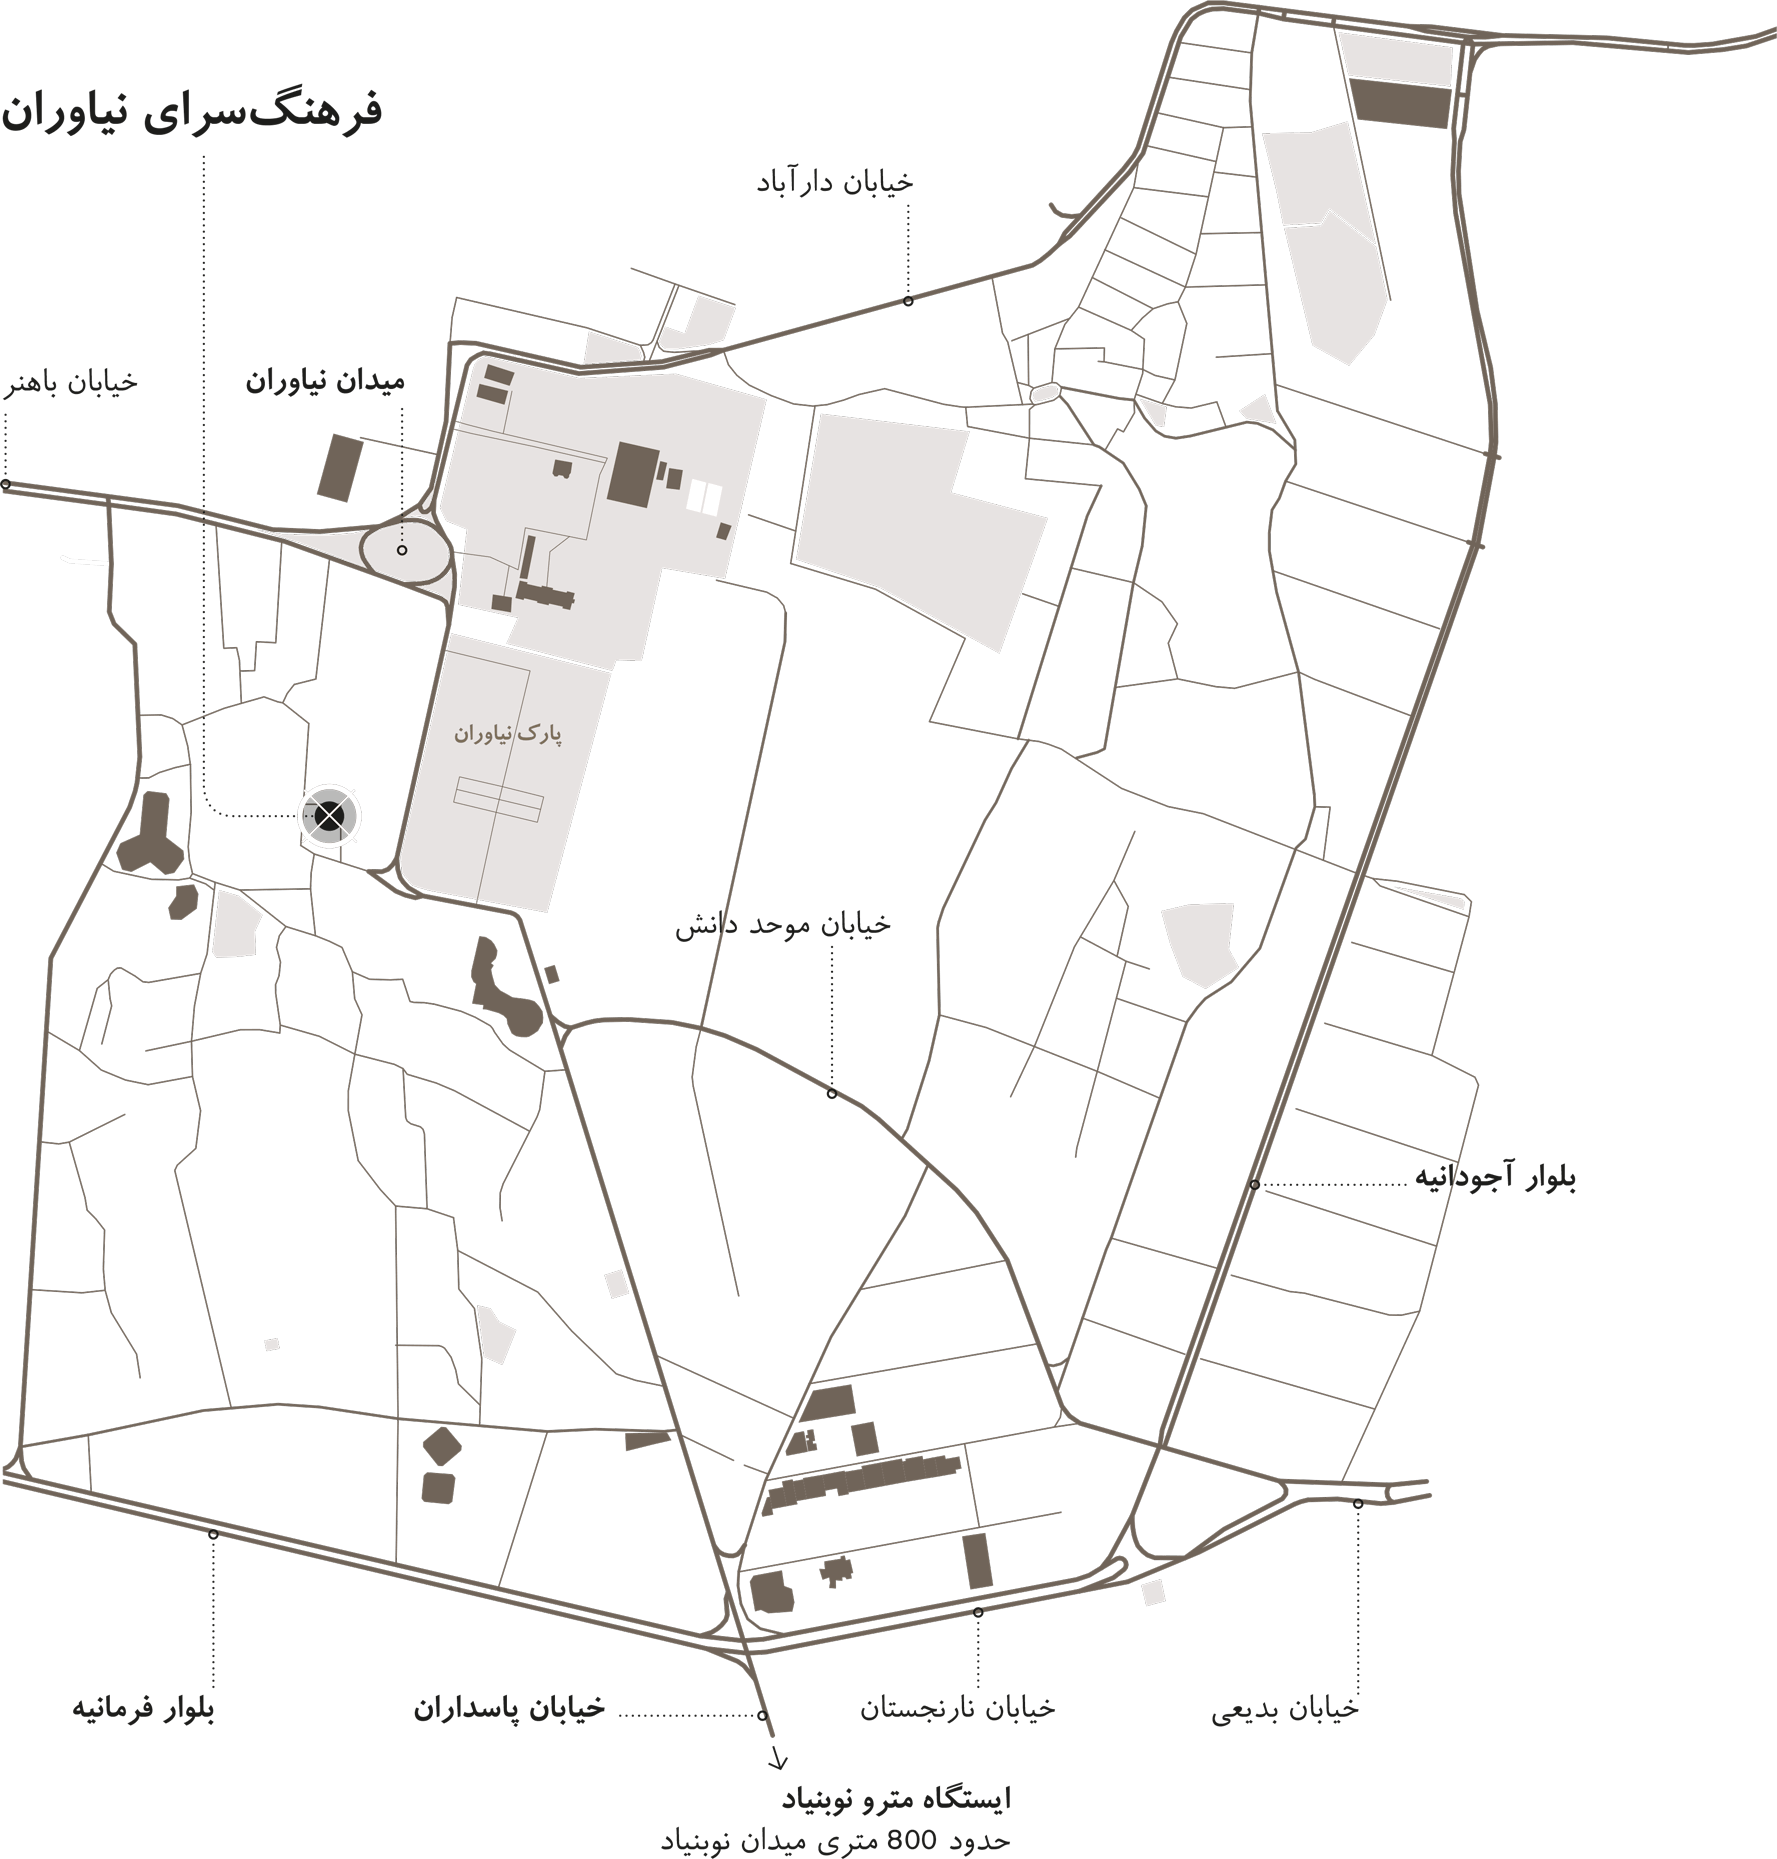 Illustrated Map of the location of the Designing in Dialogue exhibition by gmp in Tehran